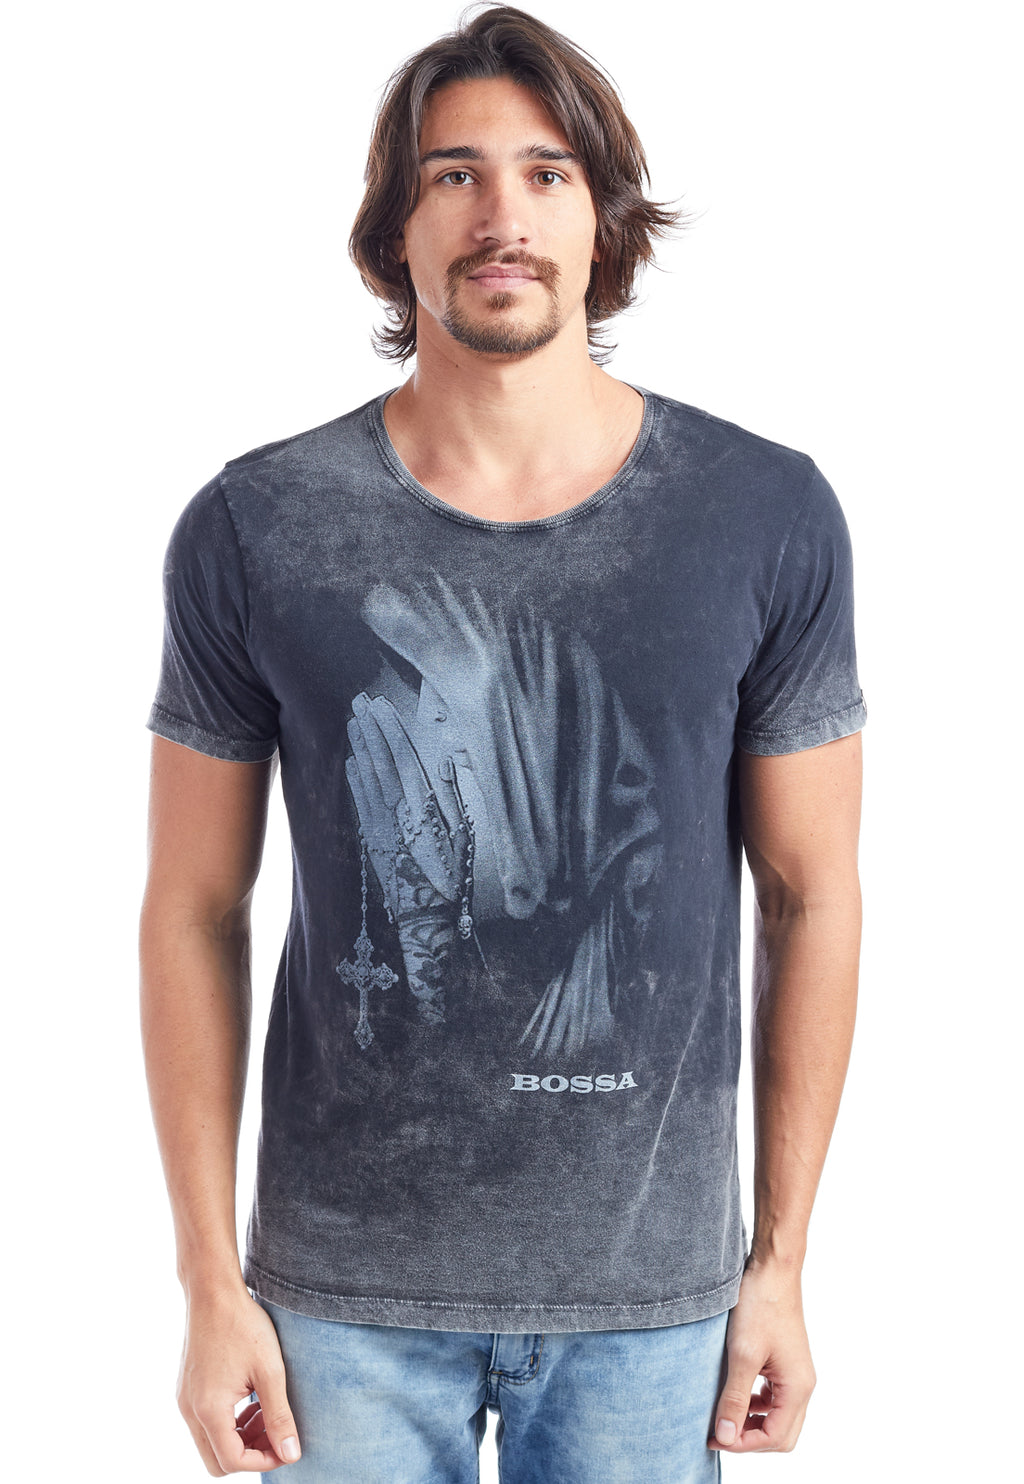 CAMISETA MASCULINA ESTAMPADA - PRAY